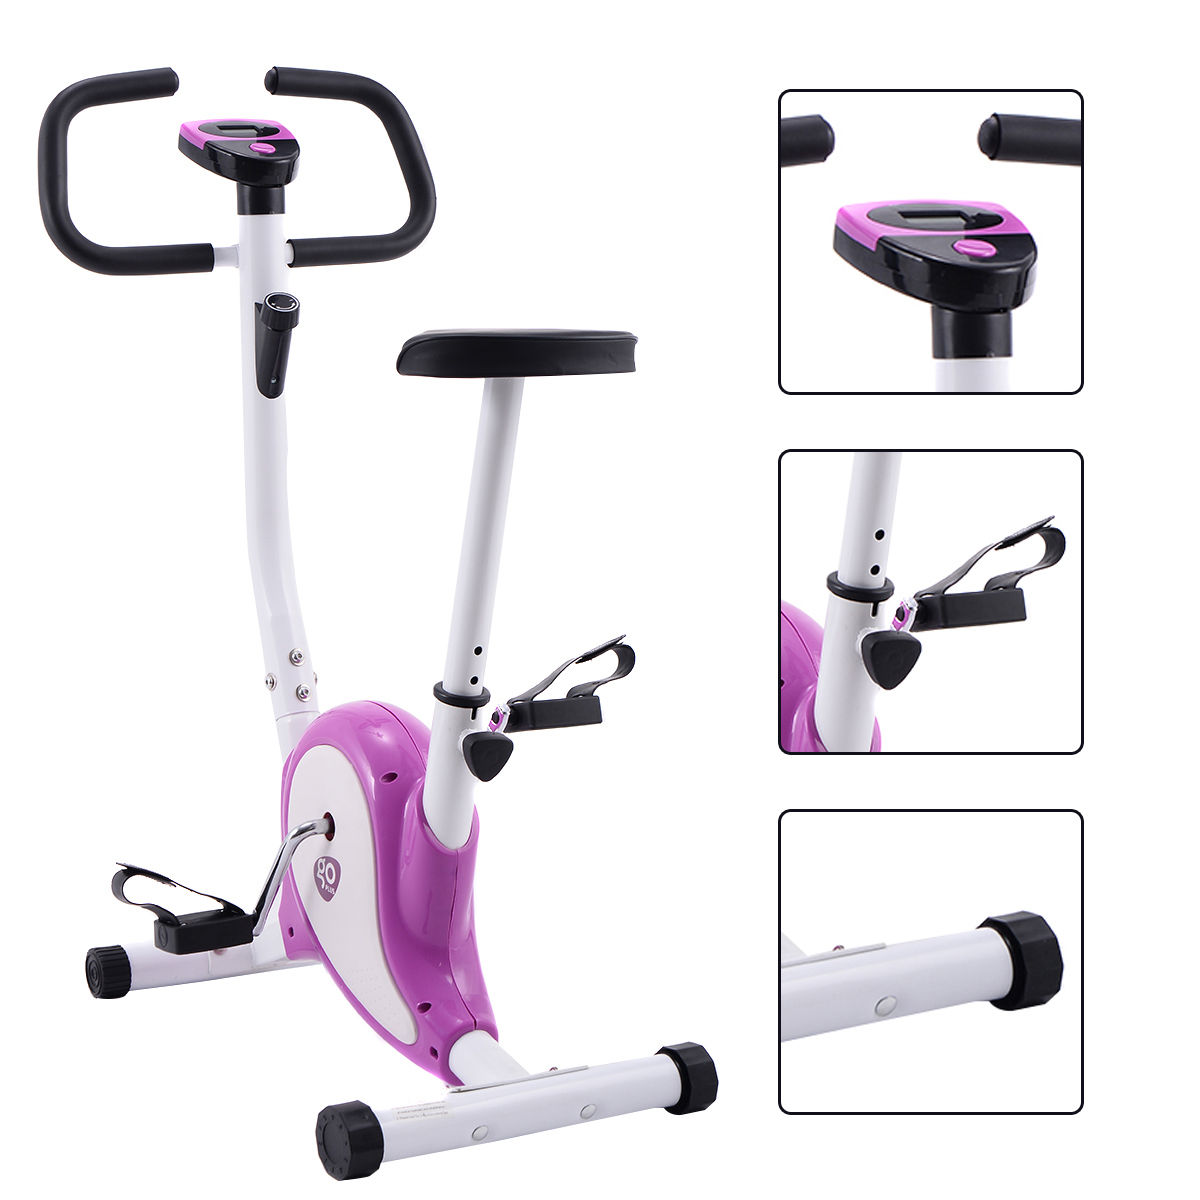 Goplus Exercise Bike Stationary Cycling Fitness Cardio Aerobic Equipment Gym Purple by Costway